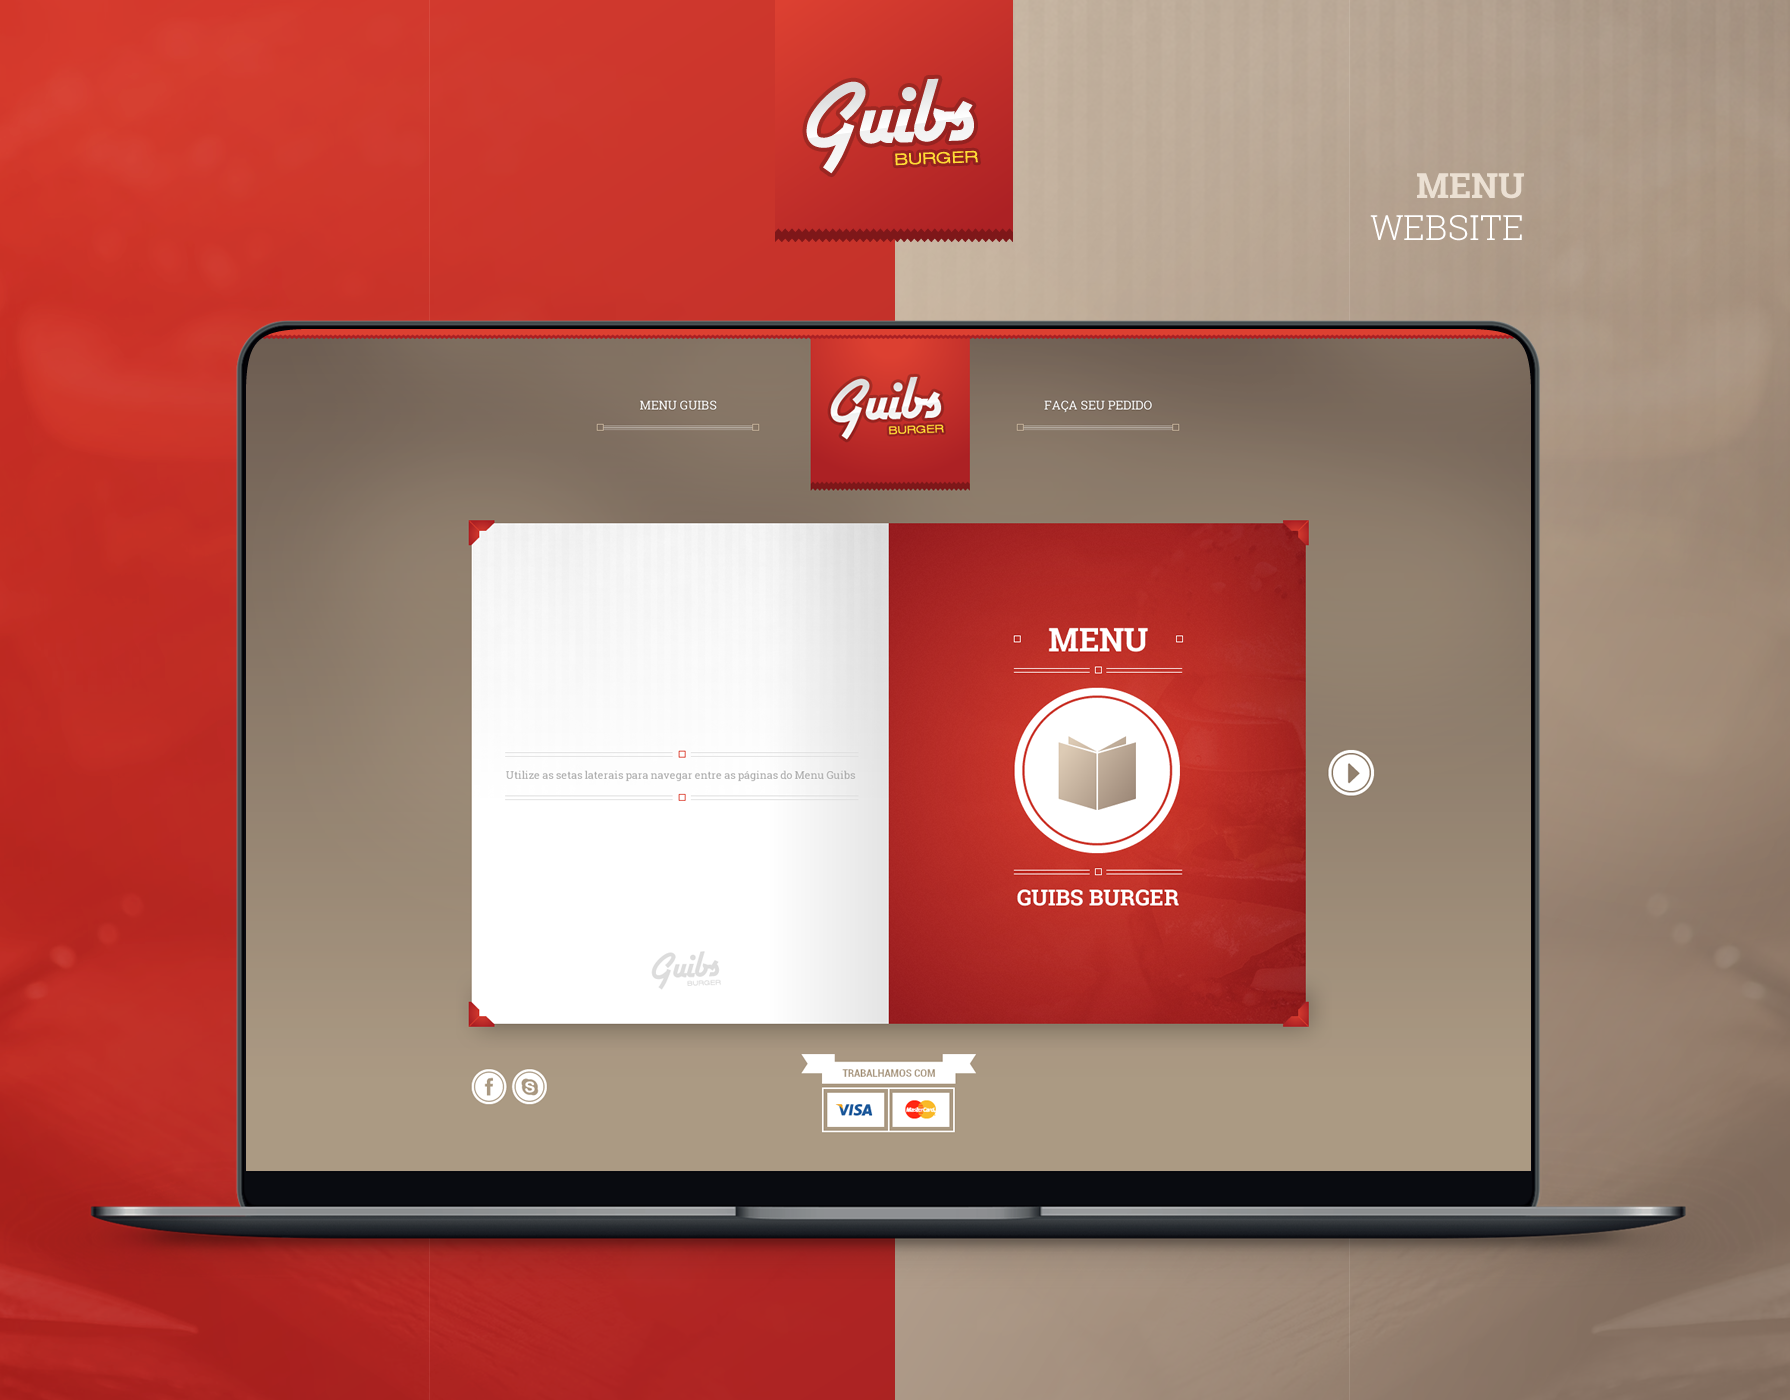 Guibs Burger - Menu Website